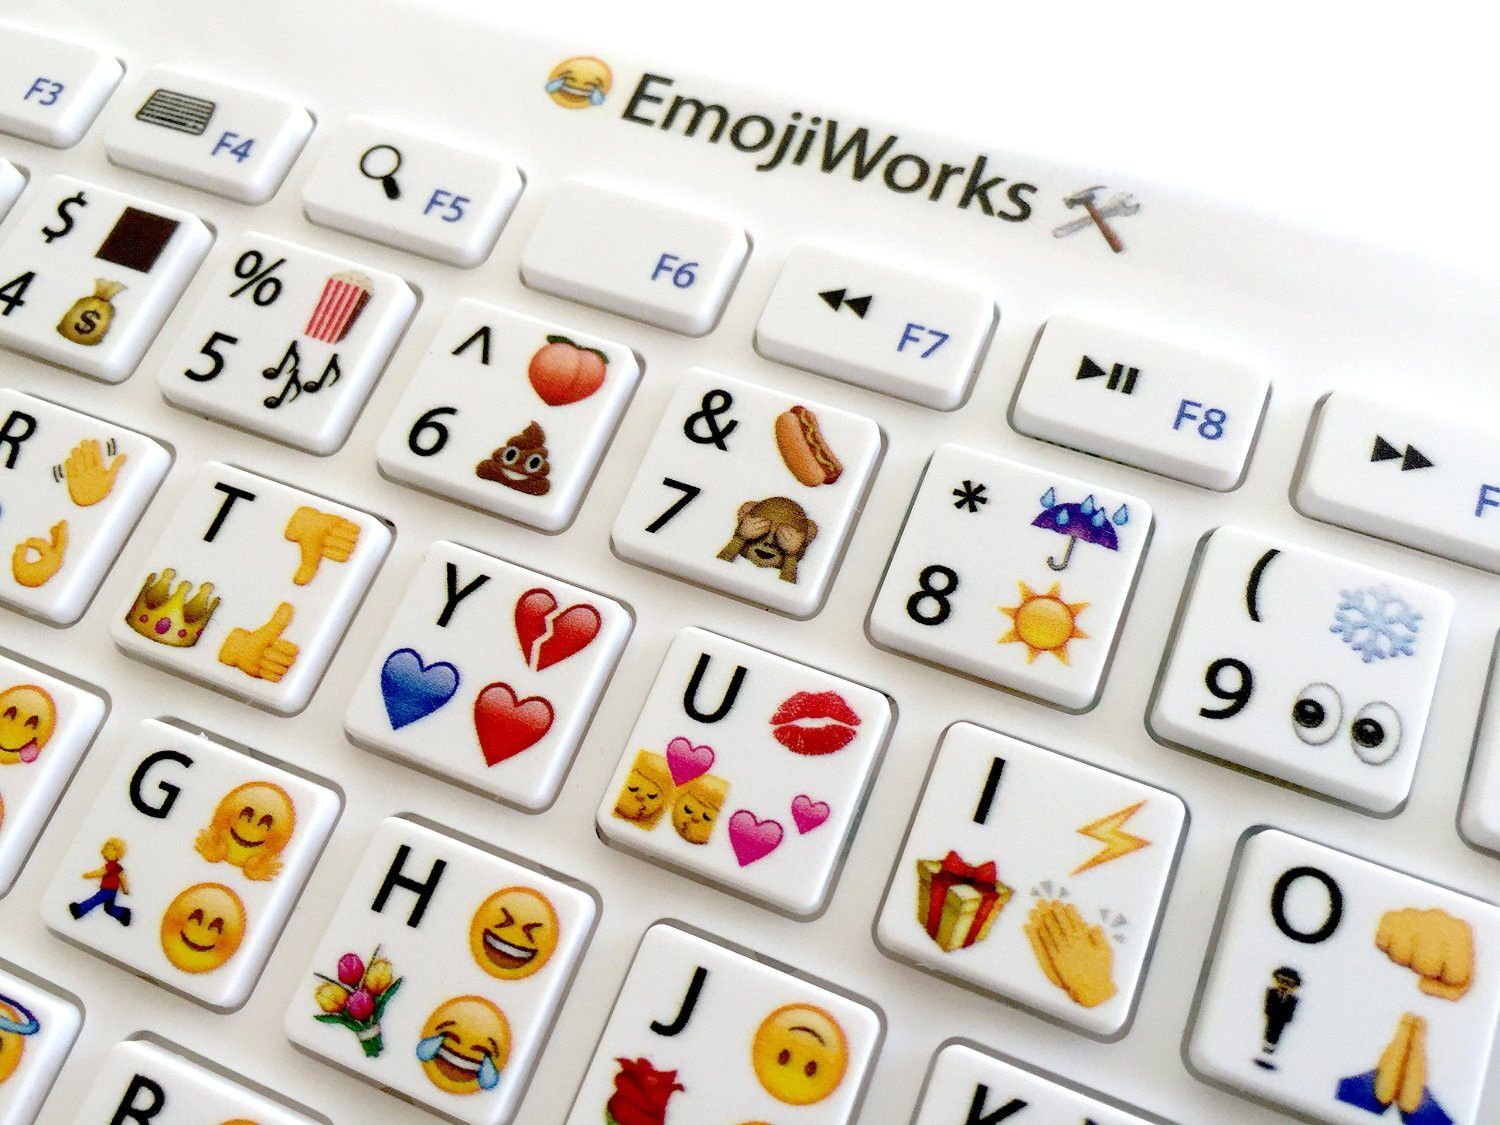 Emojiworks Emoji Keyboard Pro Bluetooth Wireless Keyboard For Mac Ipad Windows Ideias Legais Teclado Ideias